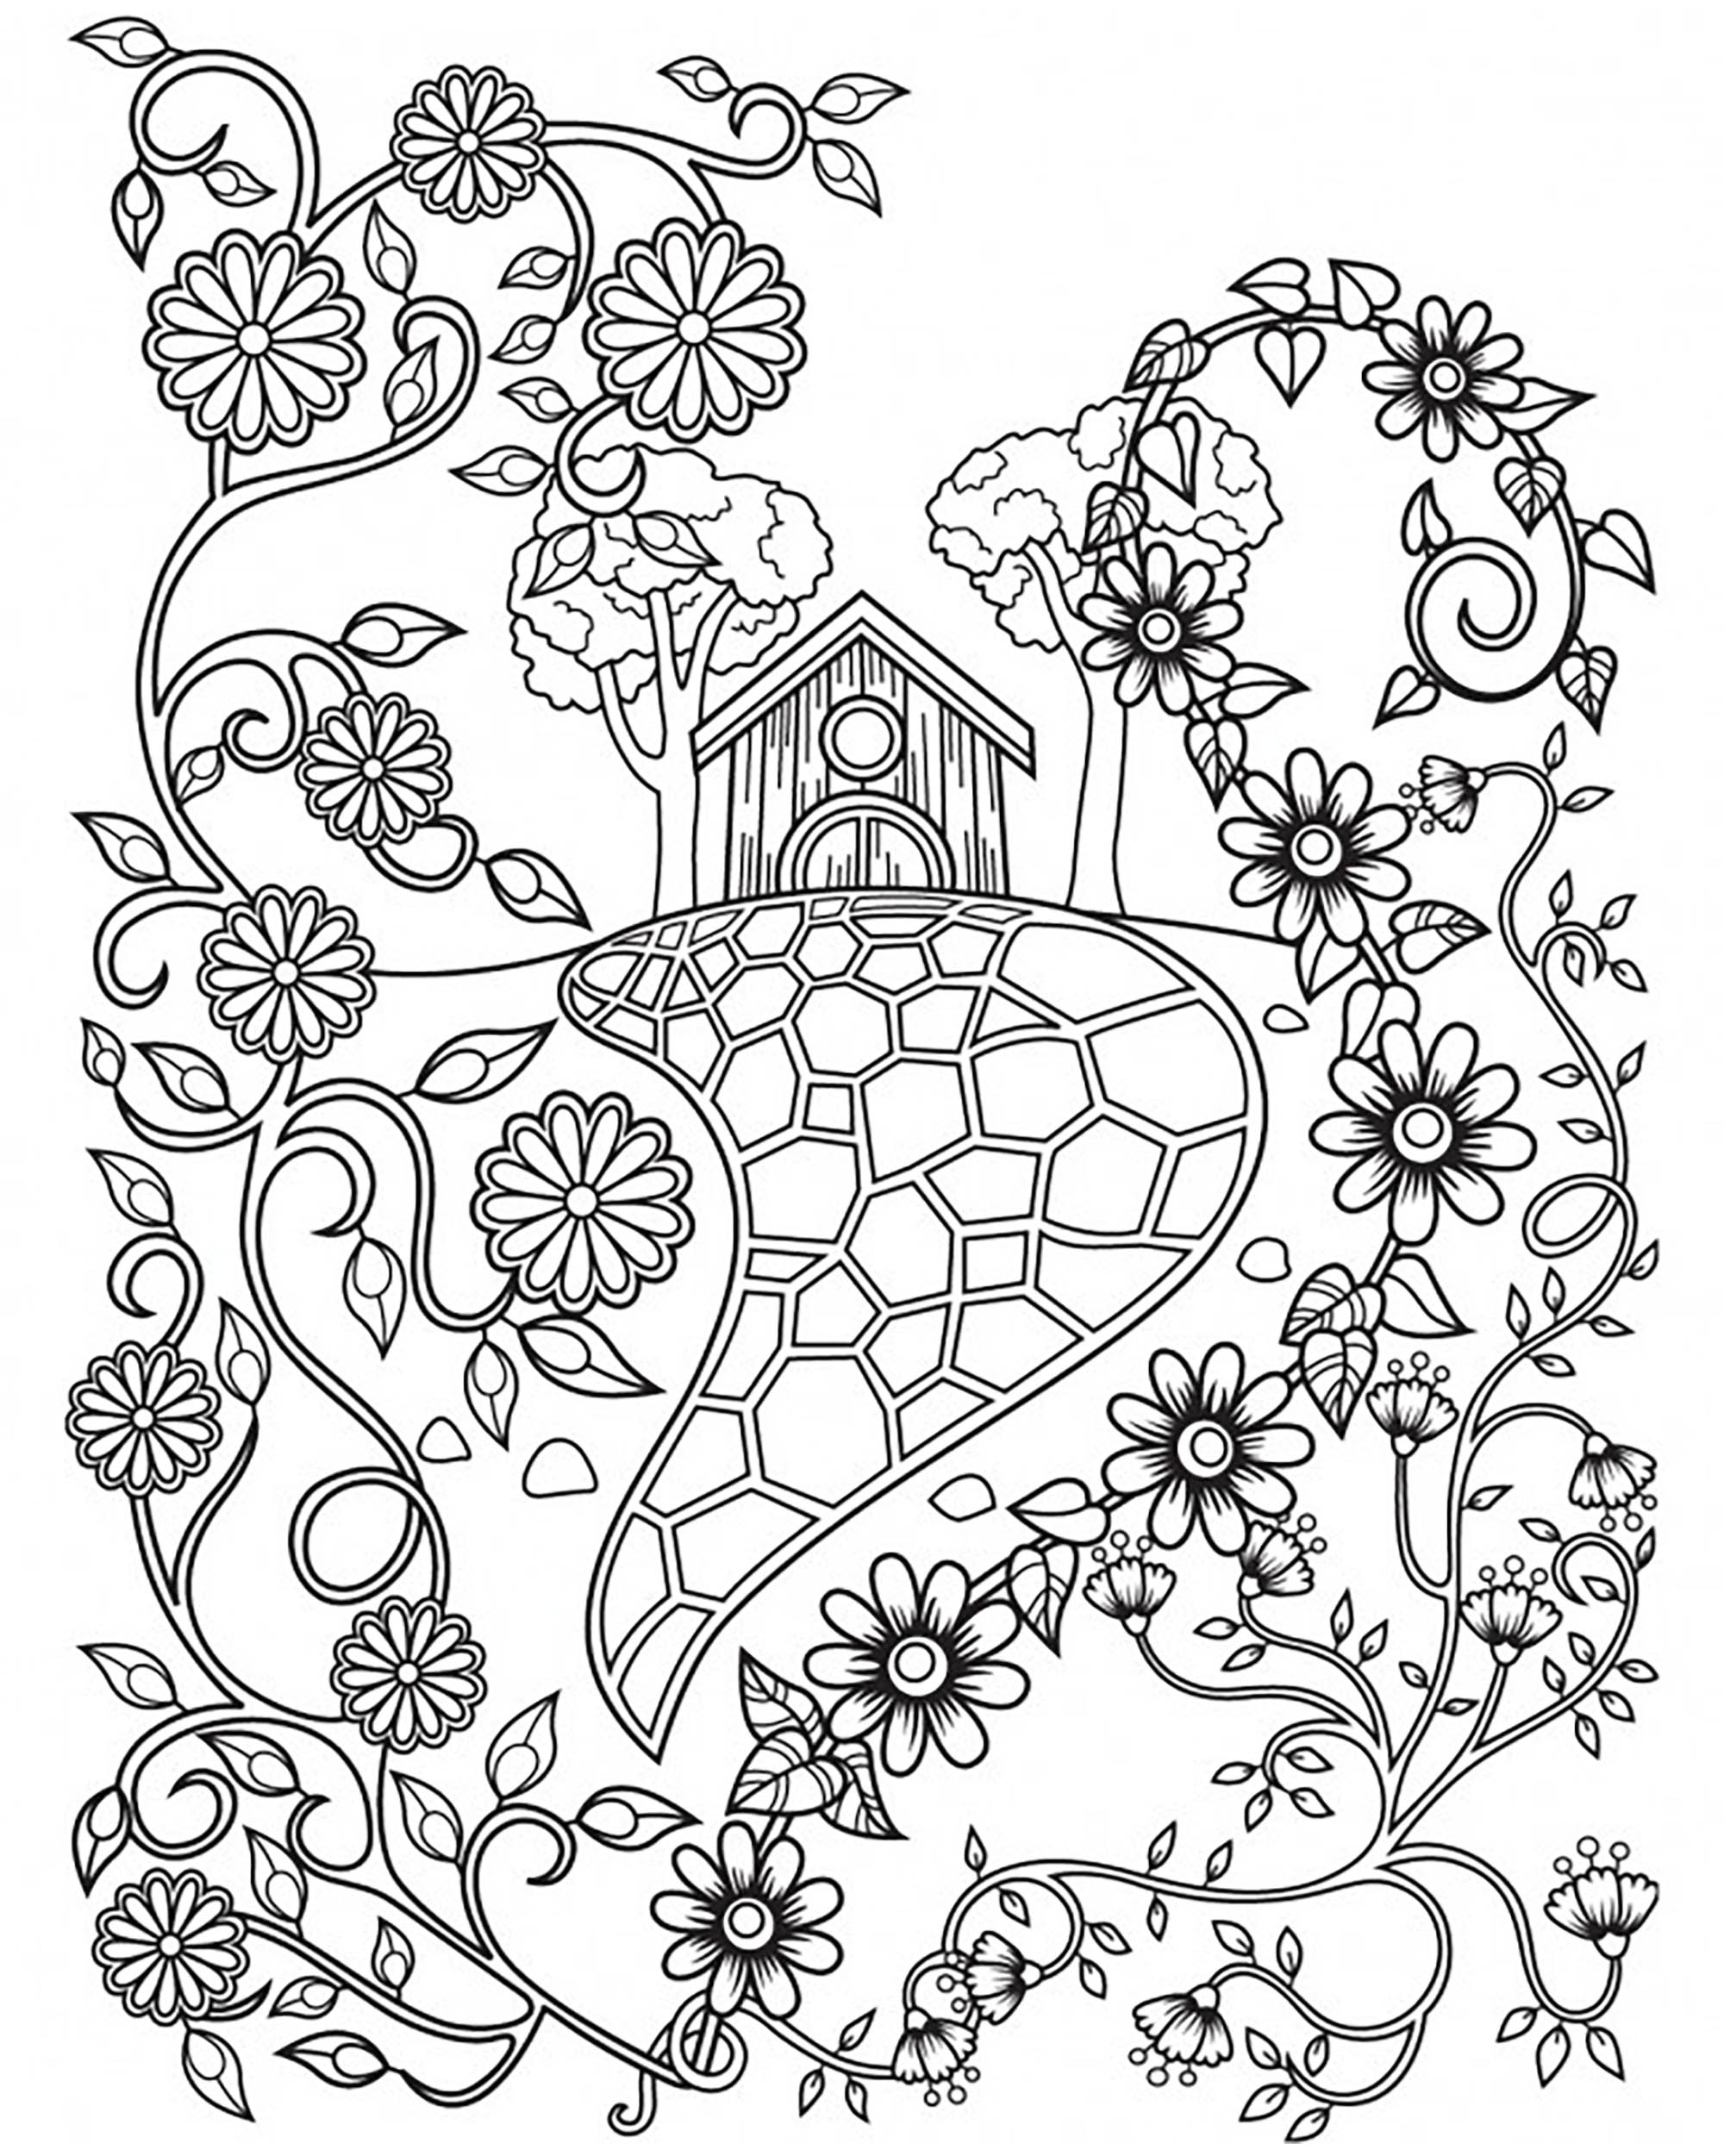 Illustration inspired by some fairy tales, with a house nearly hidden behind a flowers field. Coloring page offered by Cinthia